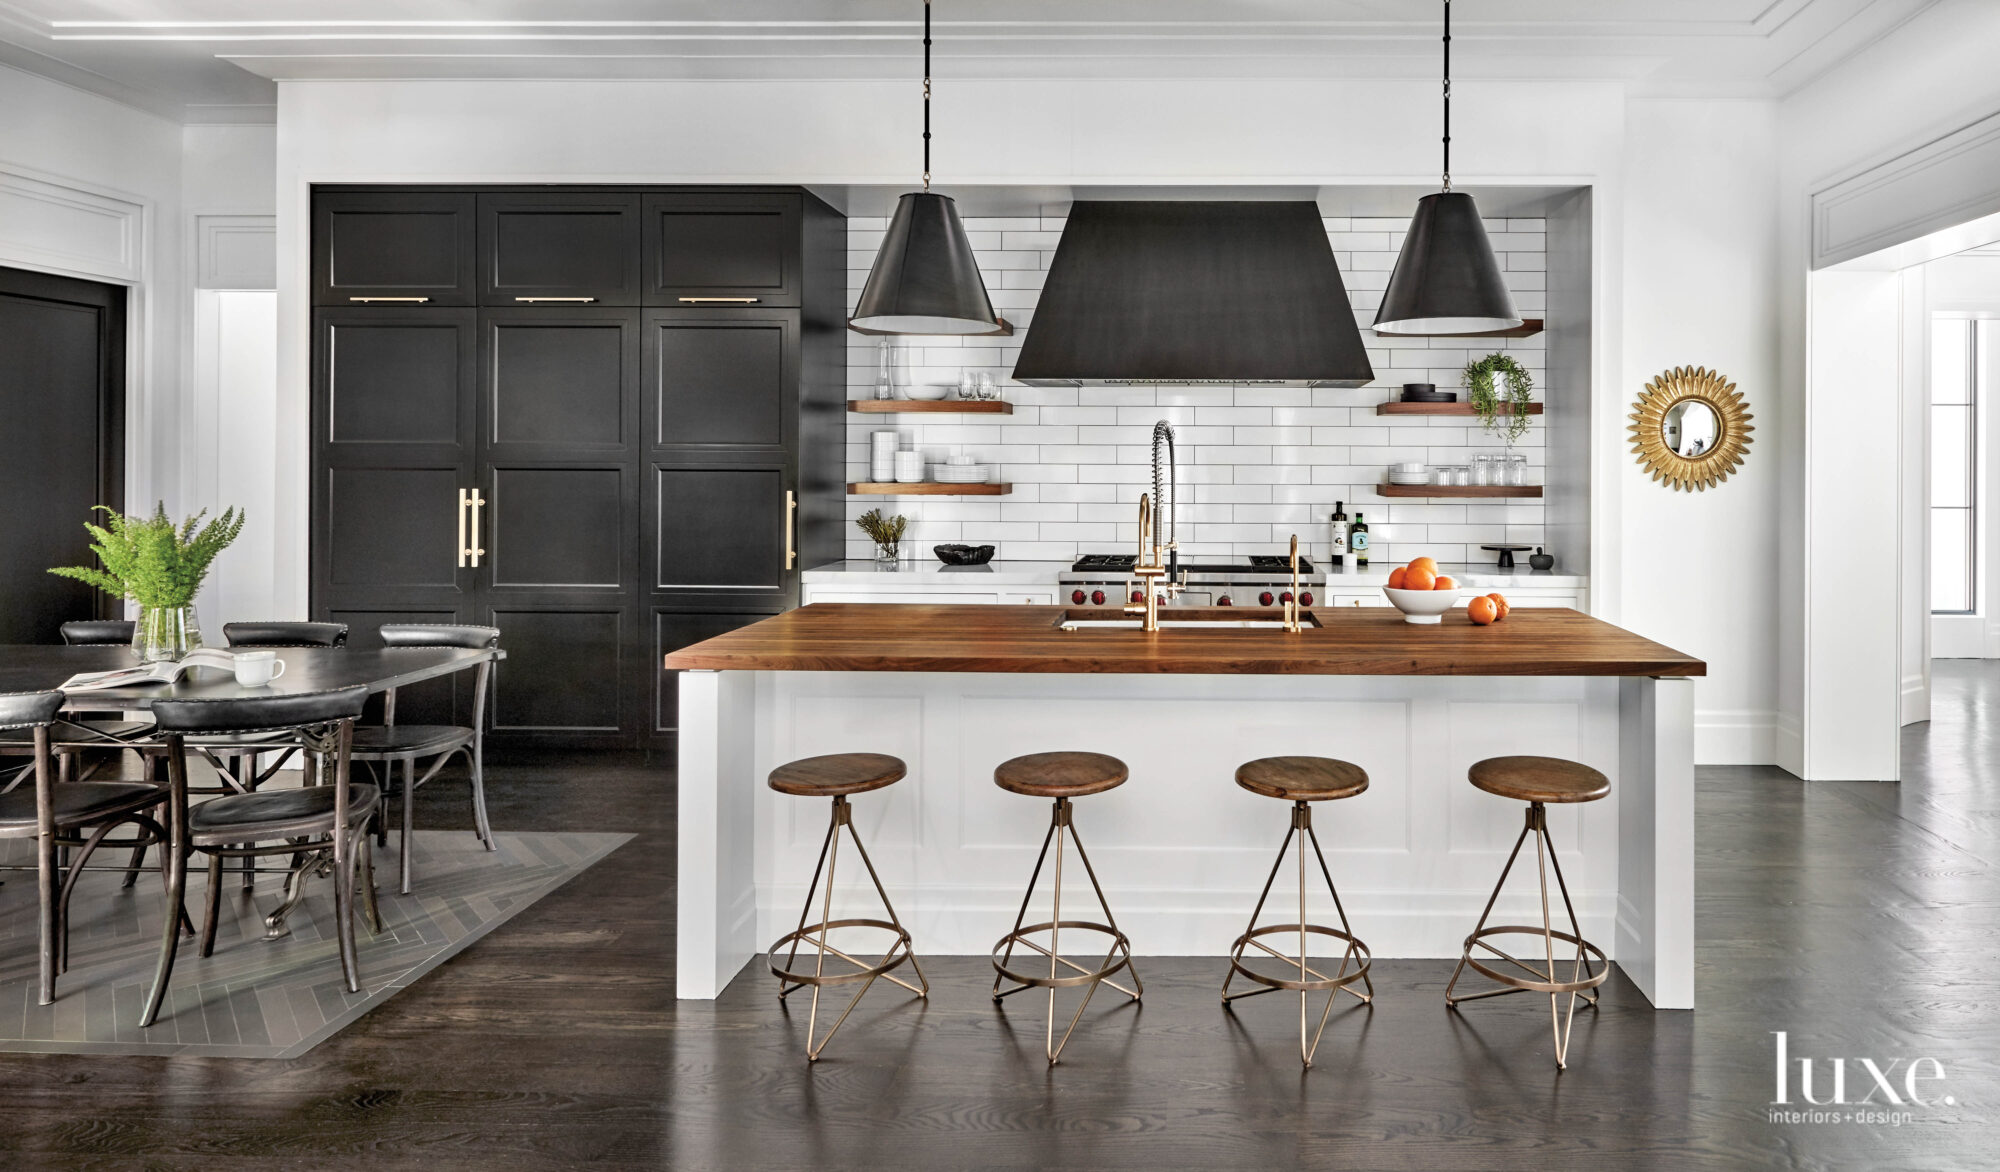 The black-and-white kitchen has a...